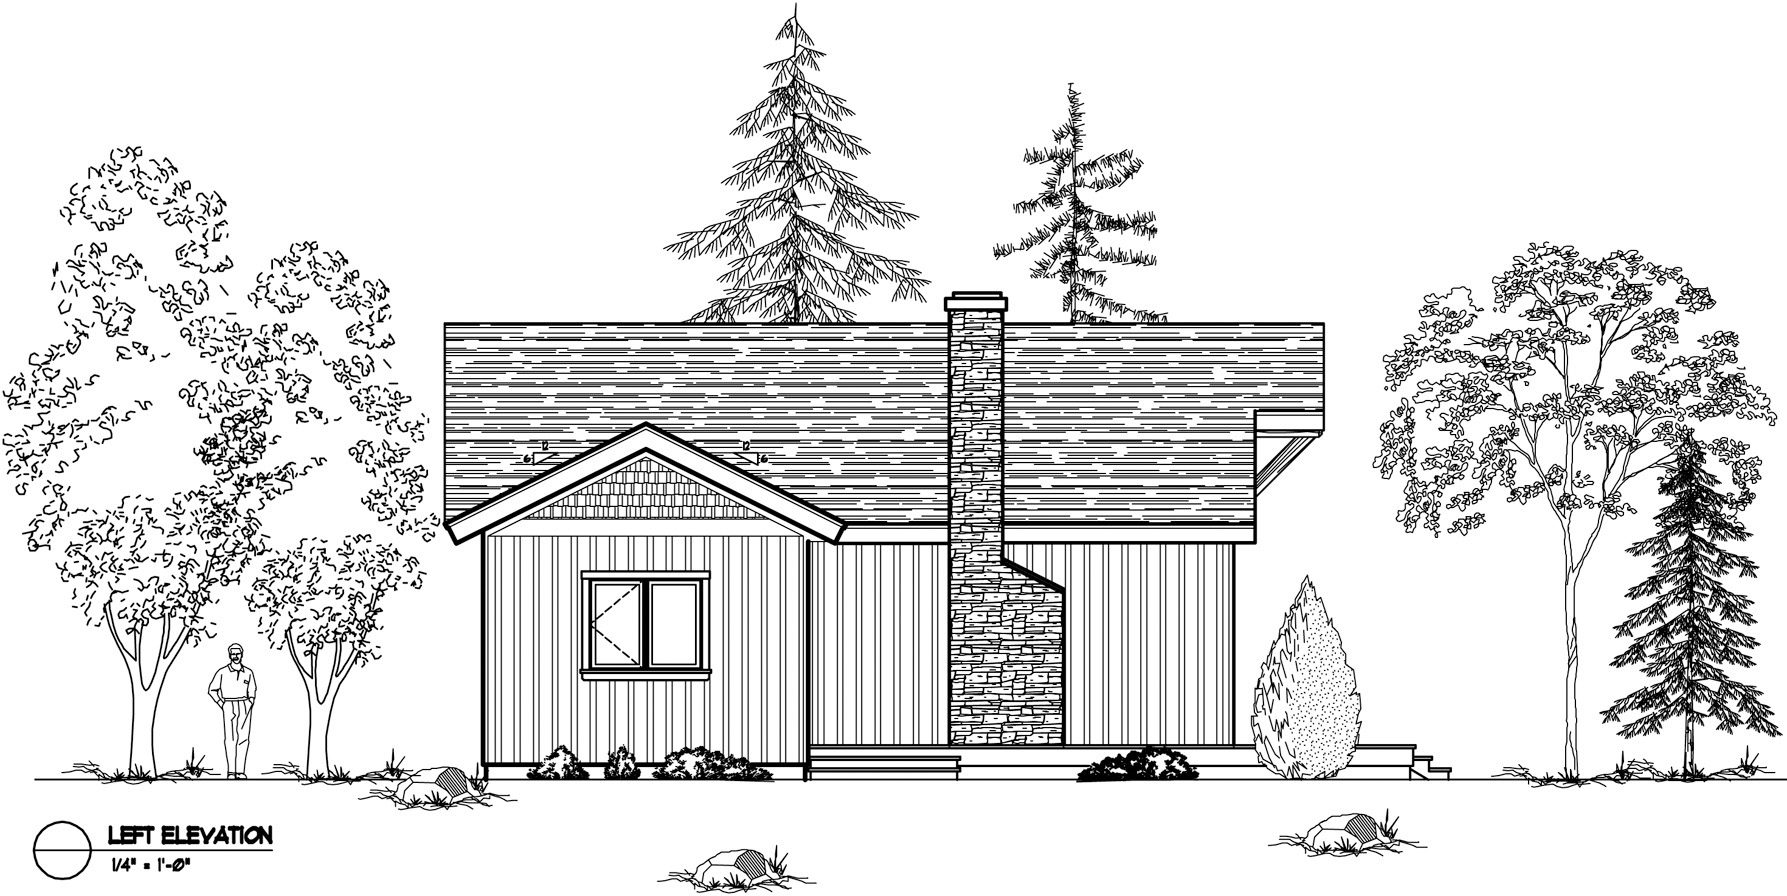 Normerica Timber Frames, House Plan, The Nipissing 3542, Left Elevation